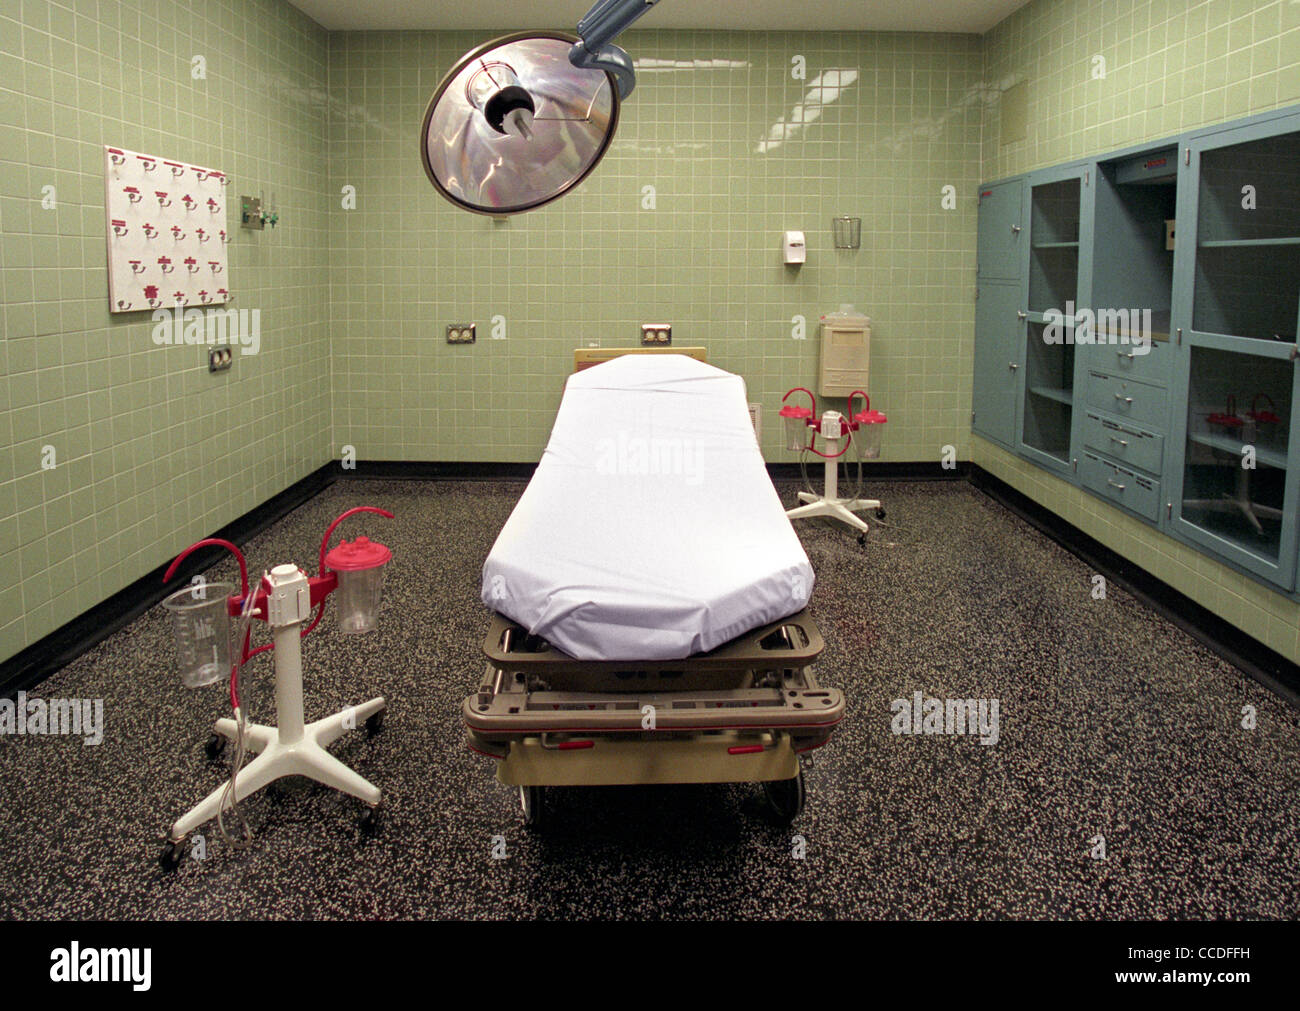 An empty hospital OR operating room without a patient. - Stock Image